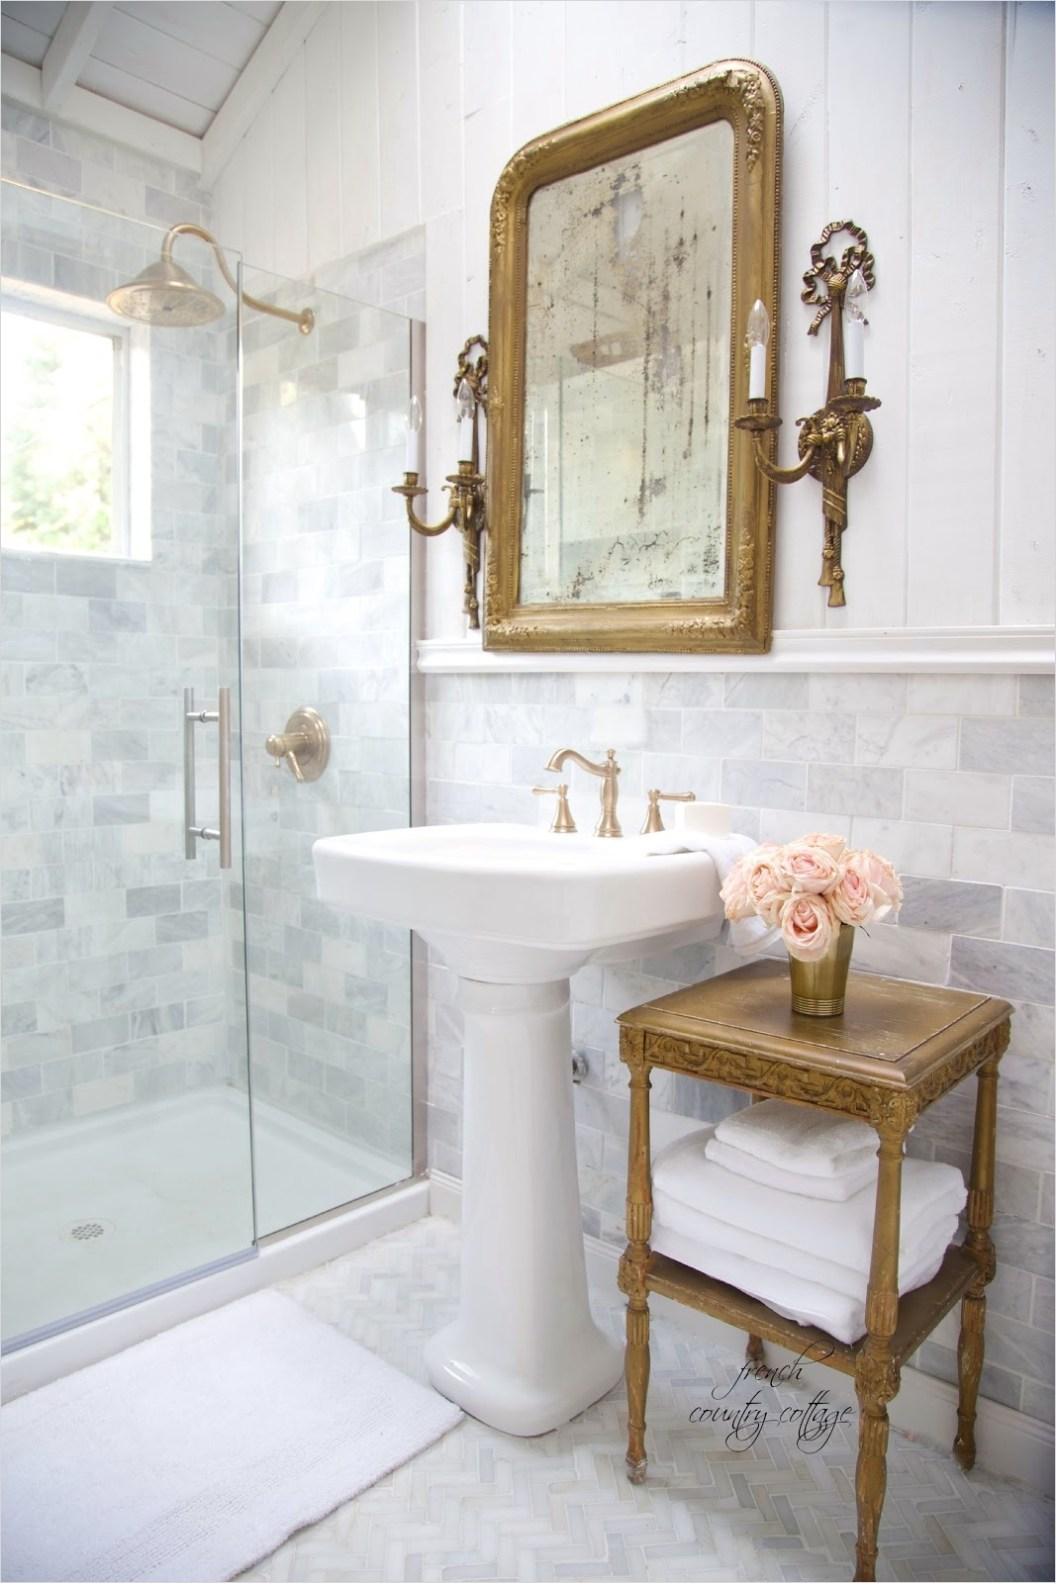 40 Stunning French Country Small Bathroom 45 Details the Perfect Pedestal Sink French Country Cottage 3